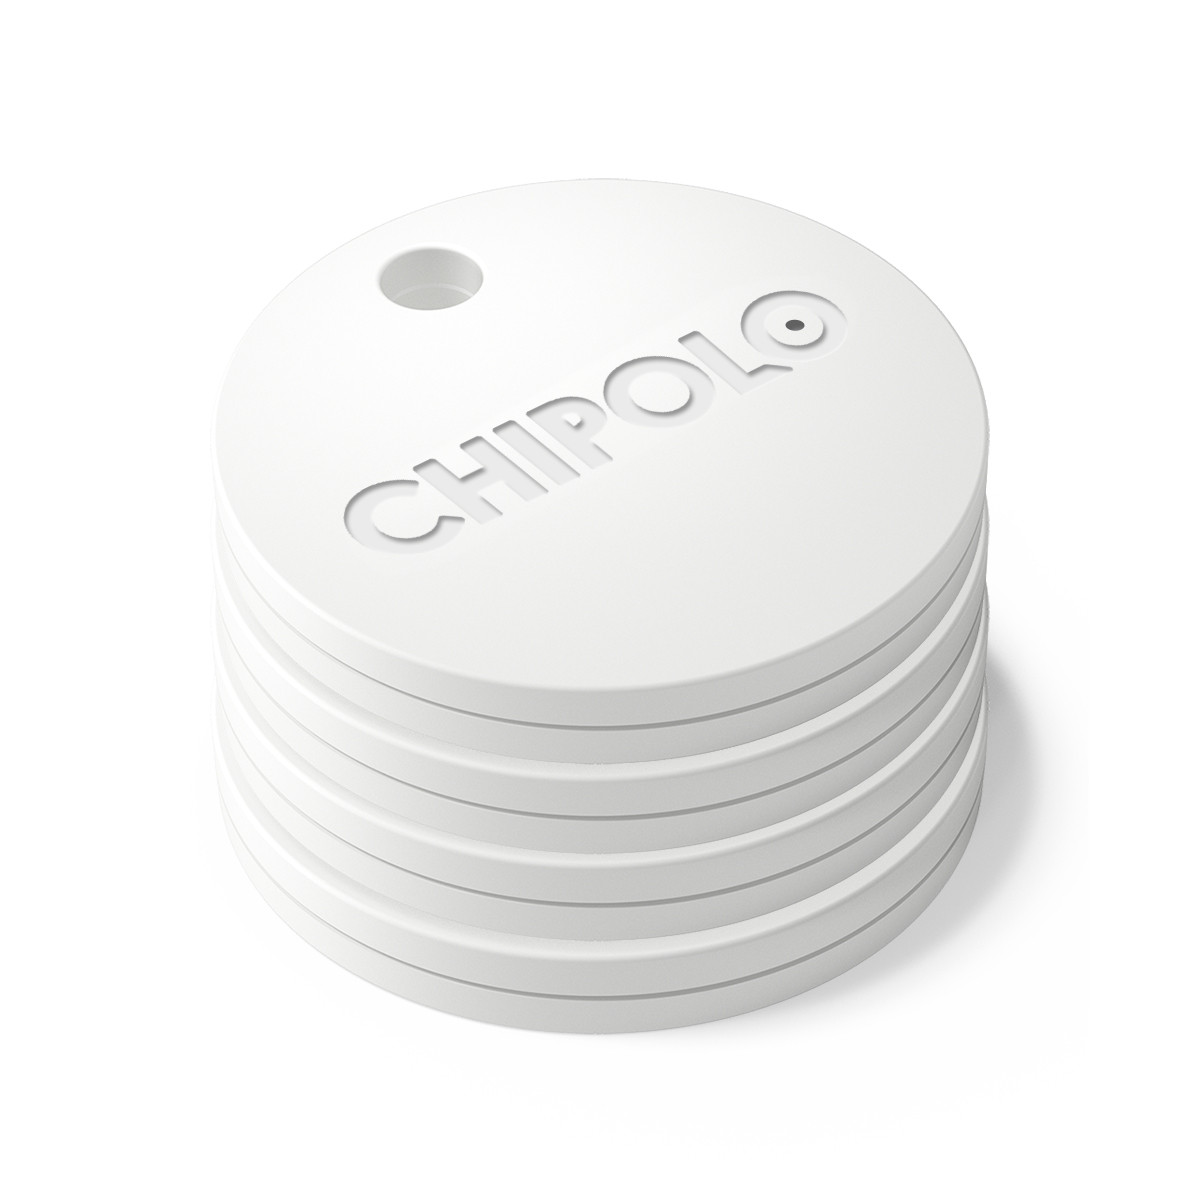 Chipolo Plus @ 100db (Pearl White) Tag it. Find it. Bluetooth Alarm System: iOS & Android συναγερμός απόστασης αντικειμένων!!!